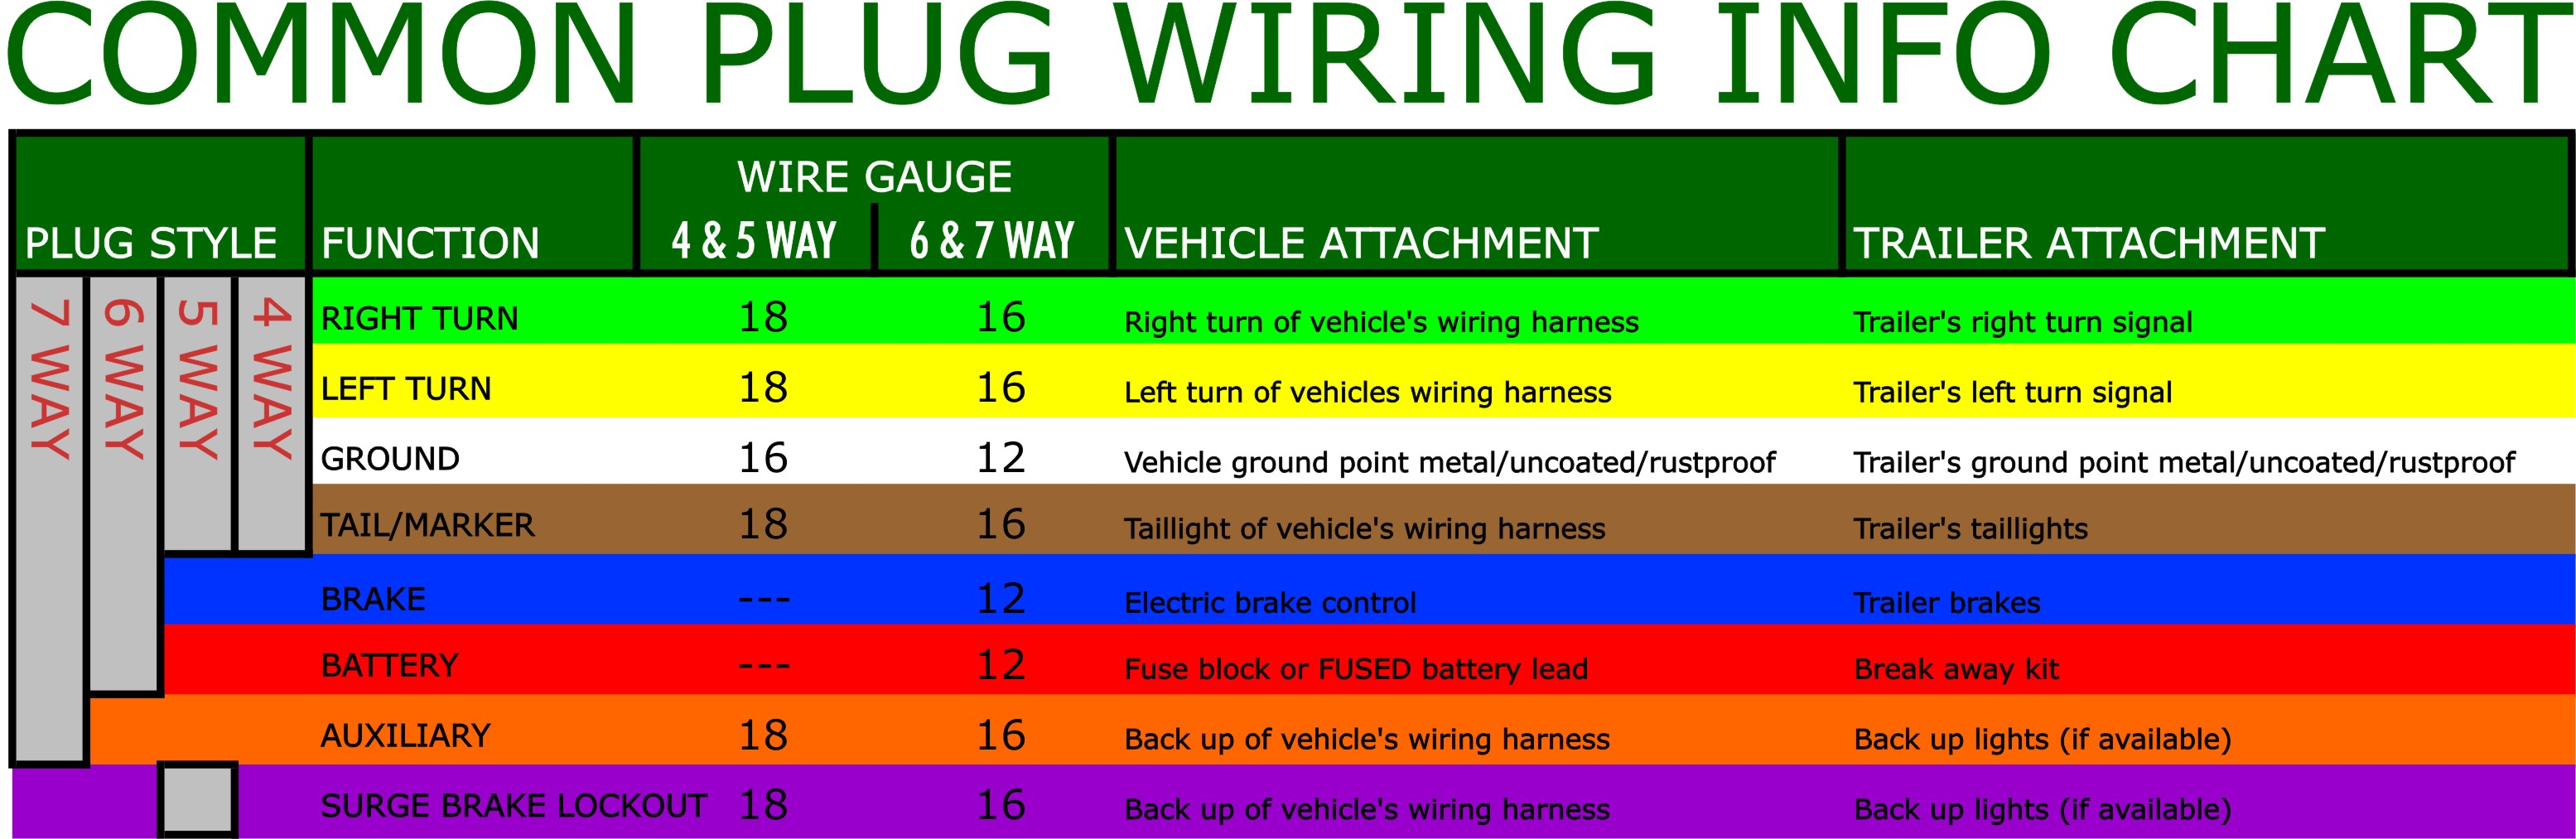 What Are The Most Common Trailer Plugs? - 4 Way Trailer Plug Wiring Diagram